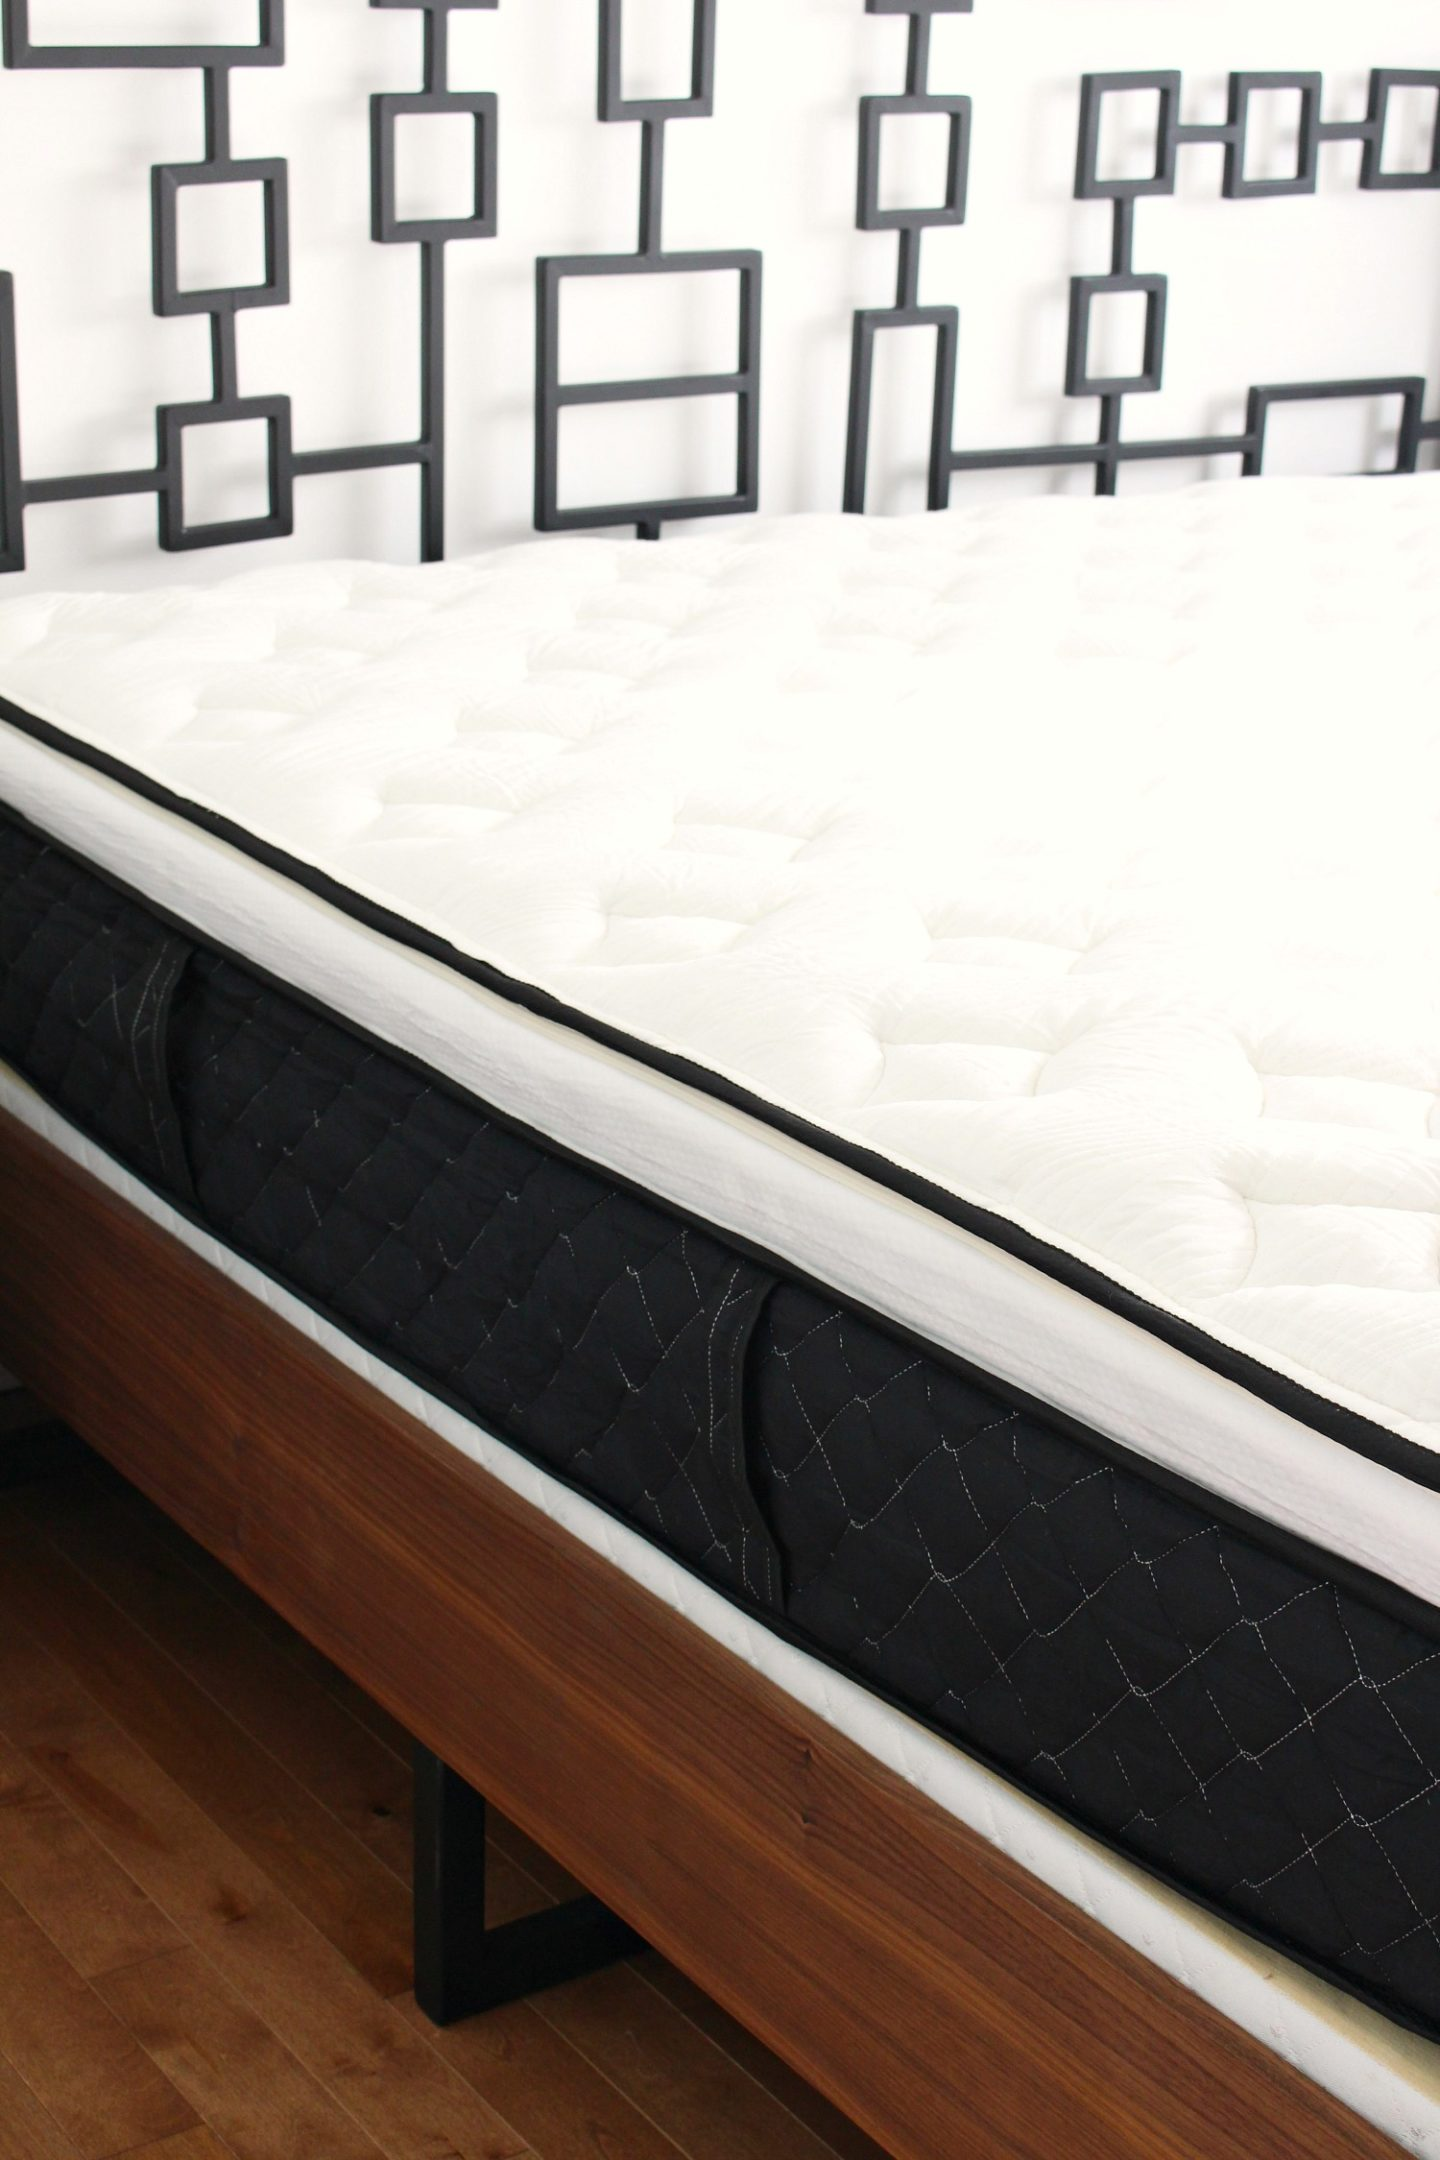 Thicker Mail Order Foam Mattress That Feels Like a Traditional Mattress | Nest Bedding Alexander Signature Hybrid Mattress Review